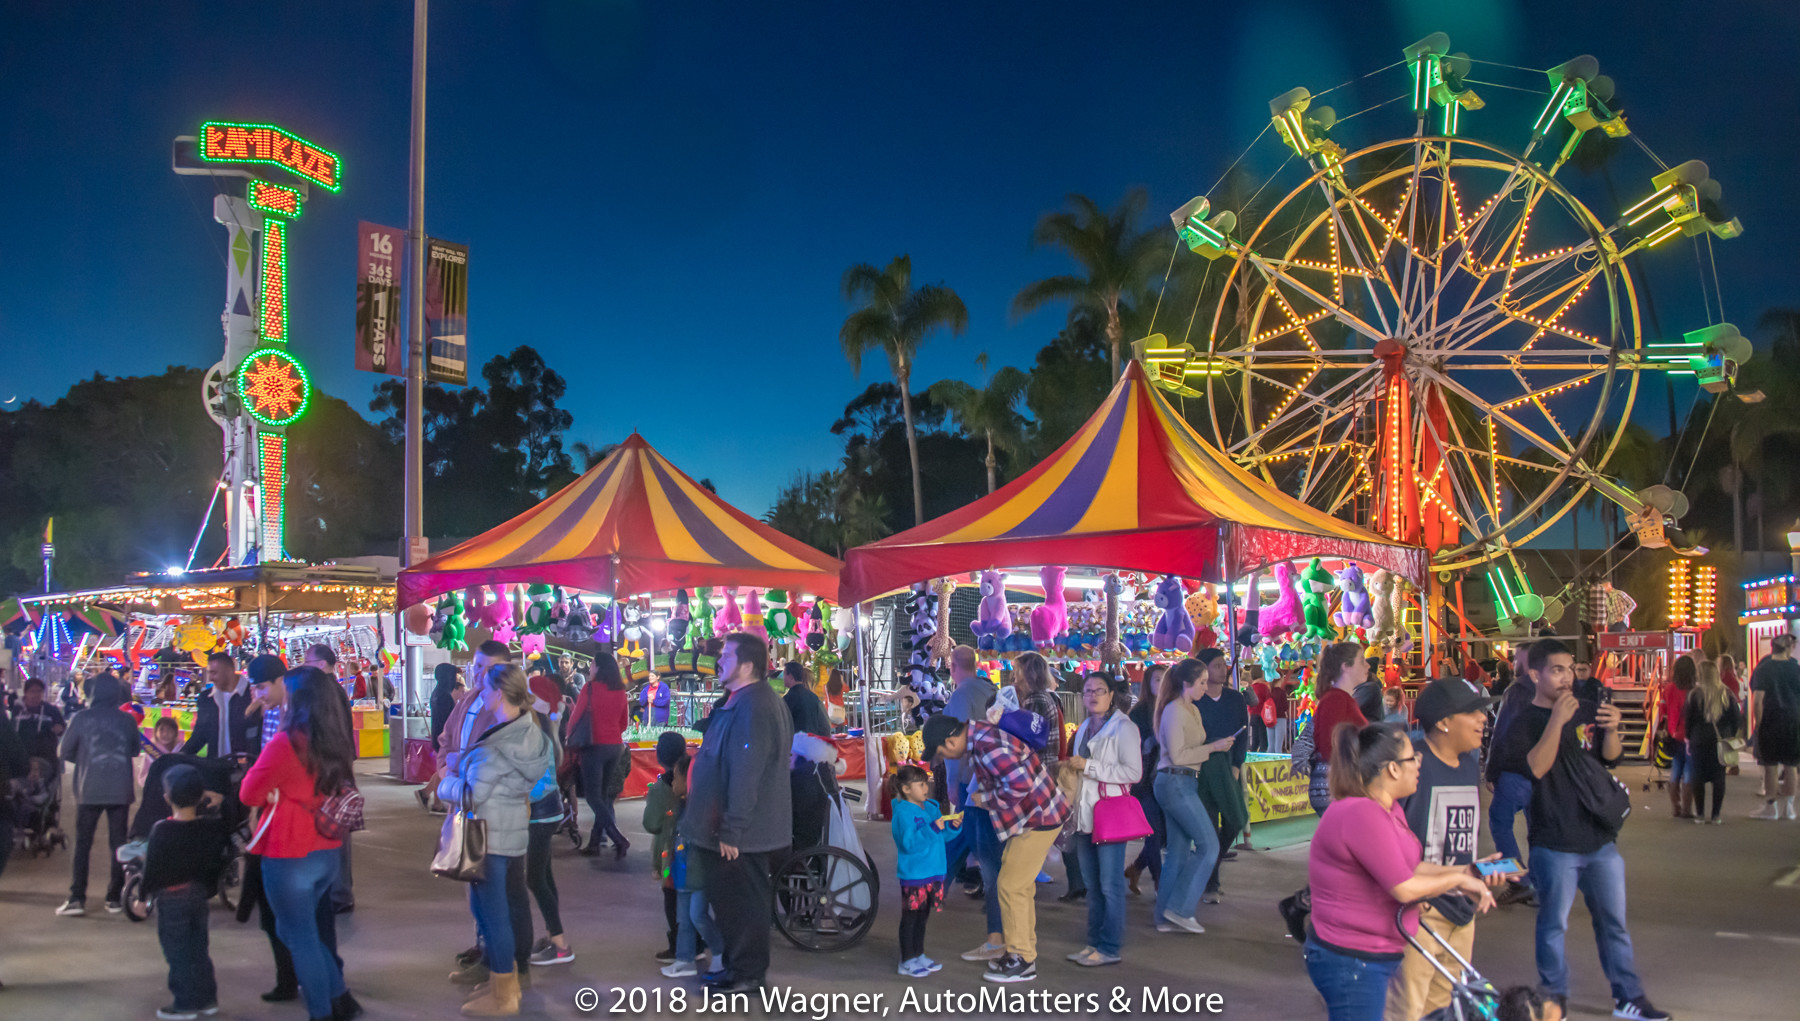 Midway Carnival